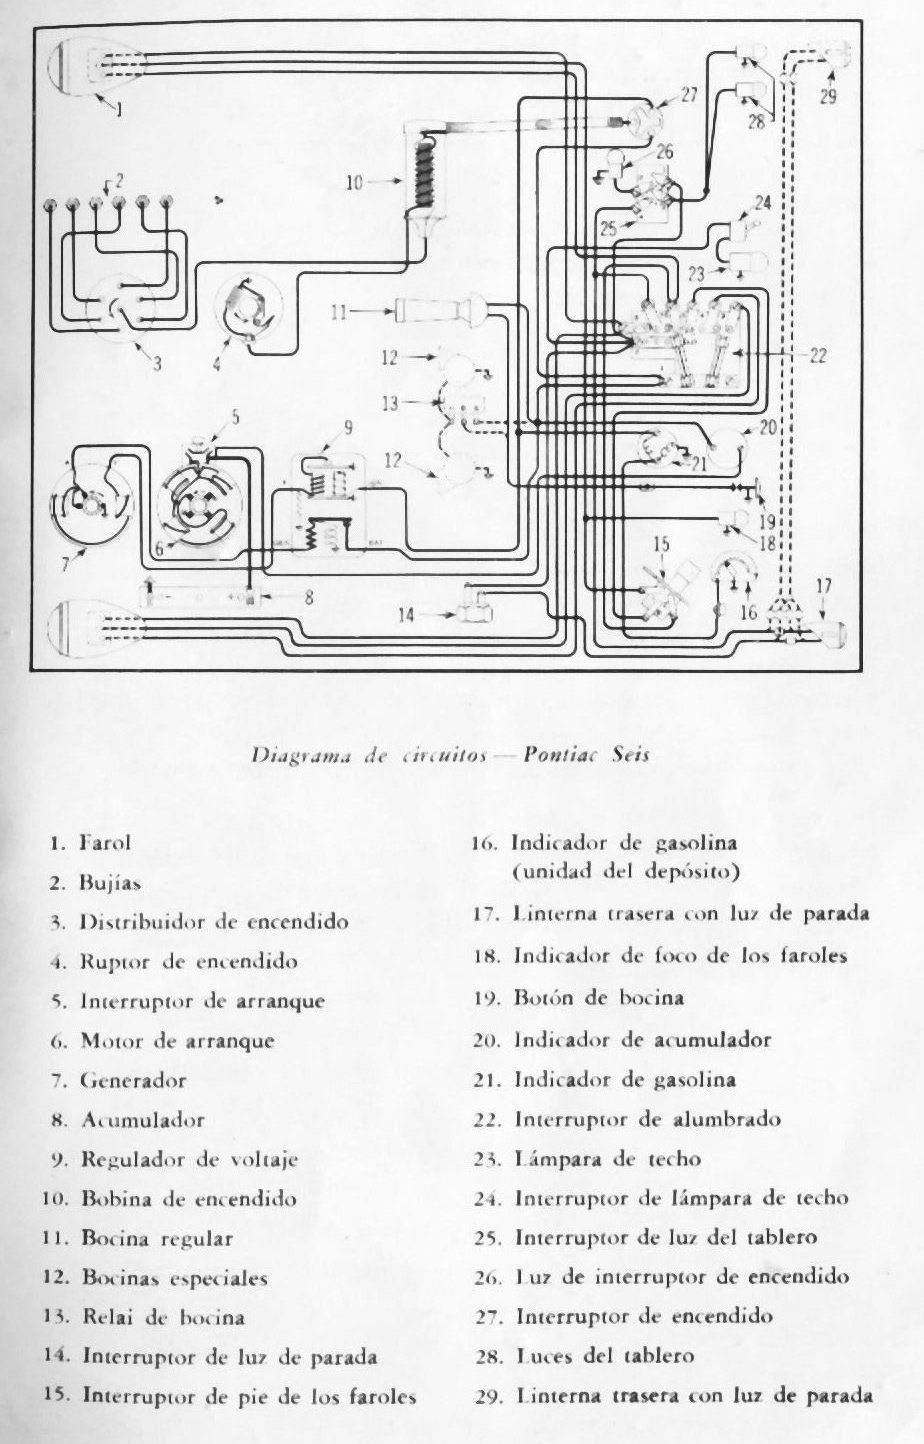 thesambacom type 1 wiring diagrams